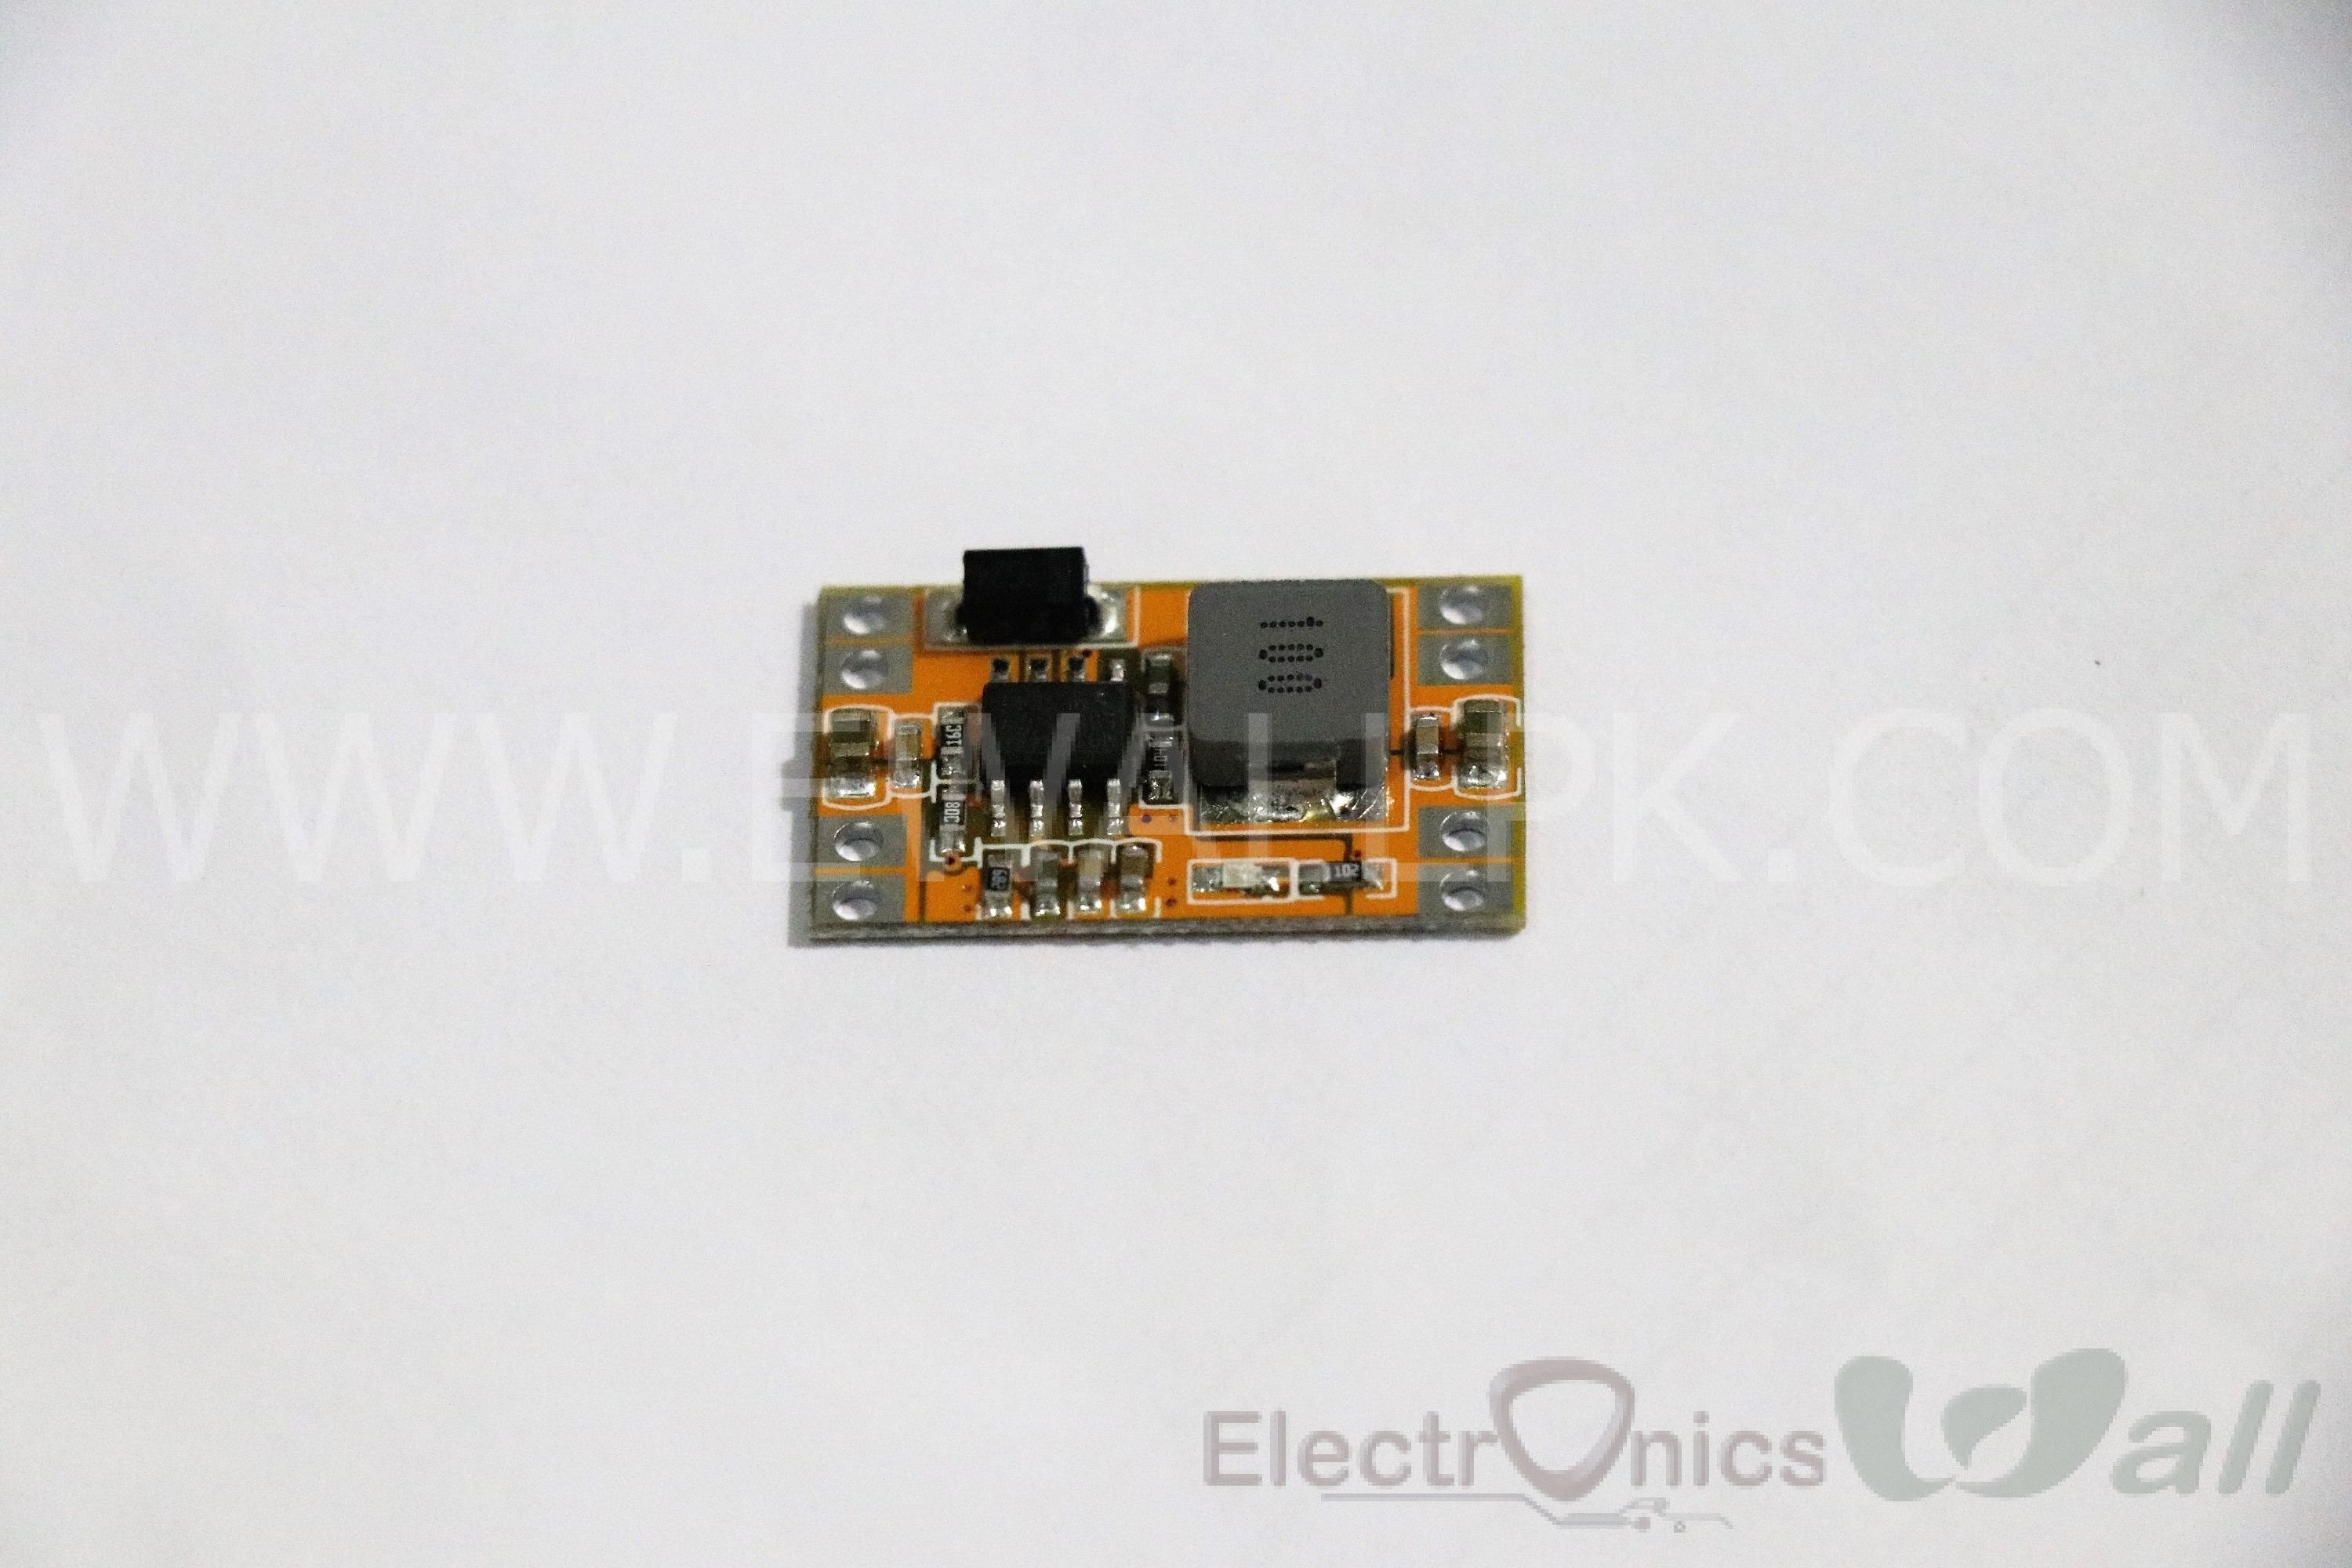 23-4.5V To 5V Fixed output dc to dc (buck) step down 3A Power Supply Module DC-DC